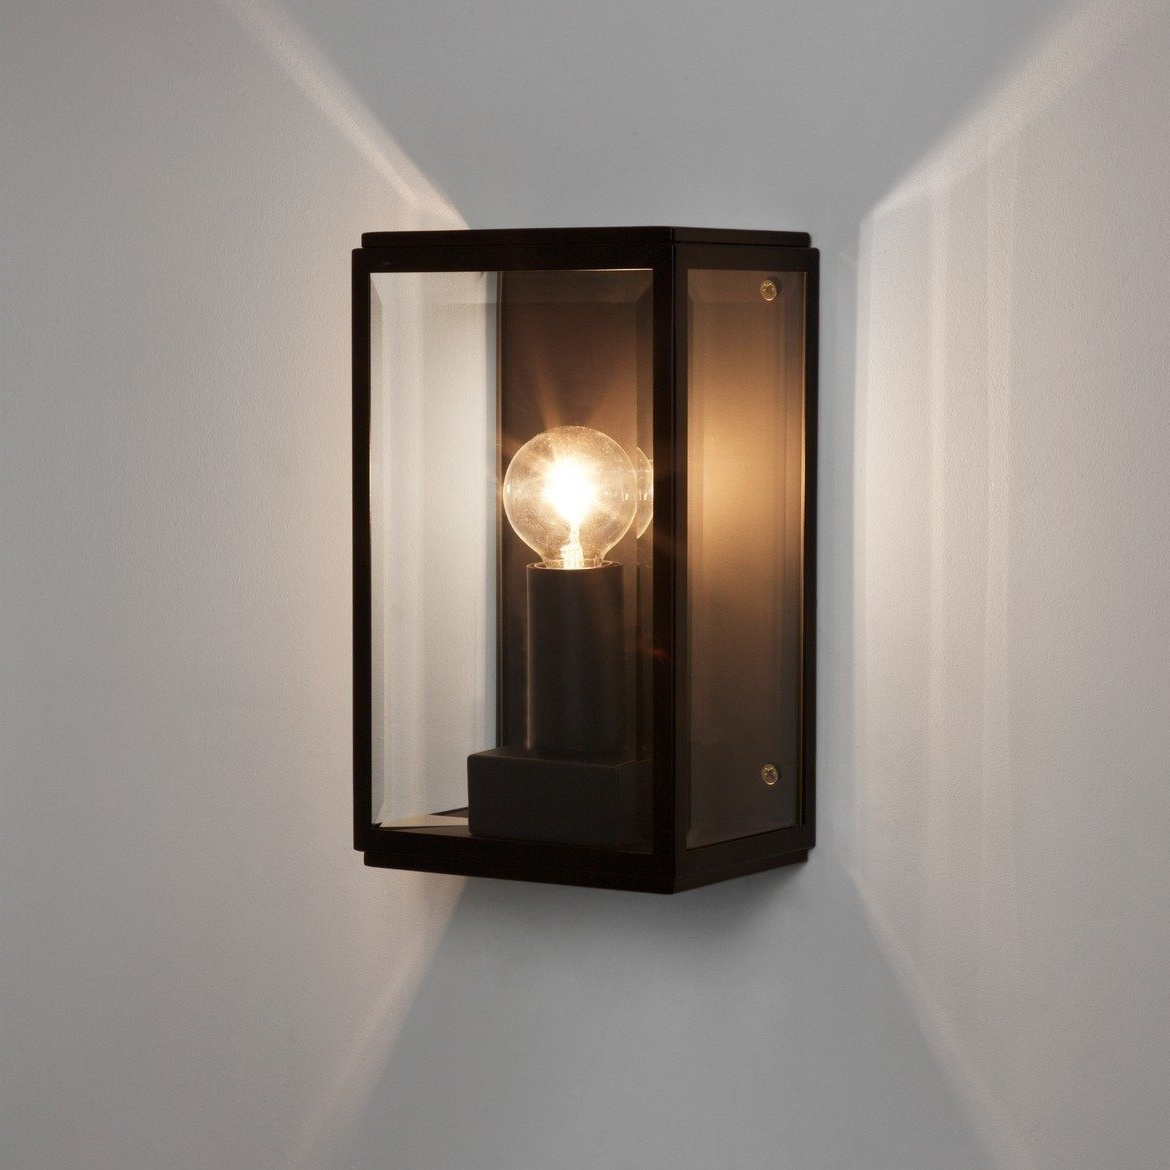 2019 Astro Lighting – Homefield 130 1095013 (7590) – Ip44 Within Sheard Textured Black 2 – Bulb Wall Lanterns (View 4 of 15)